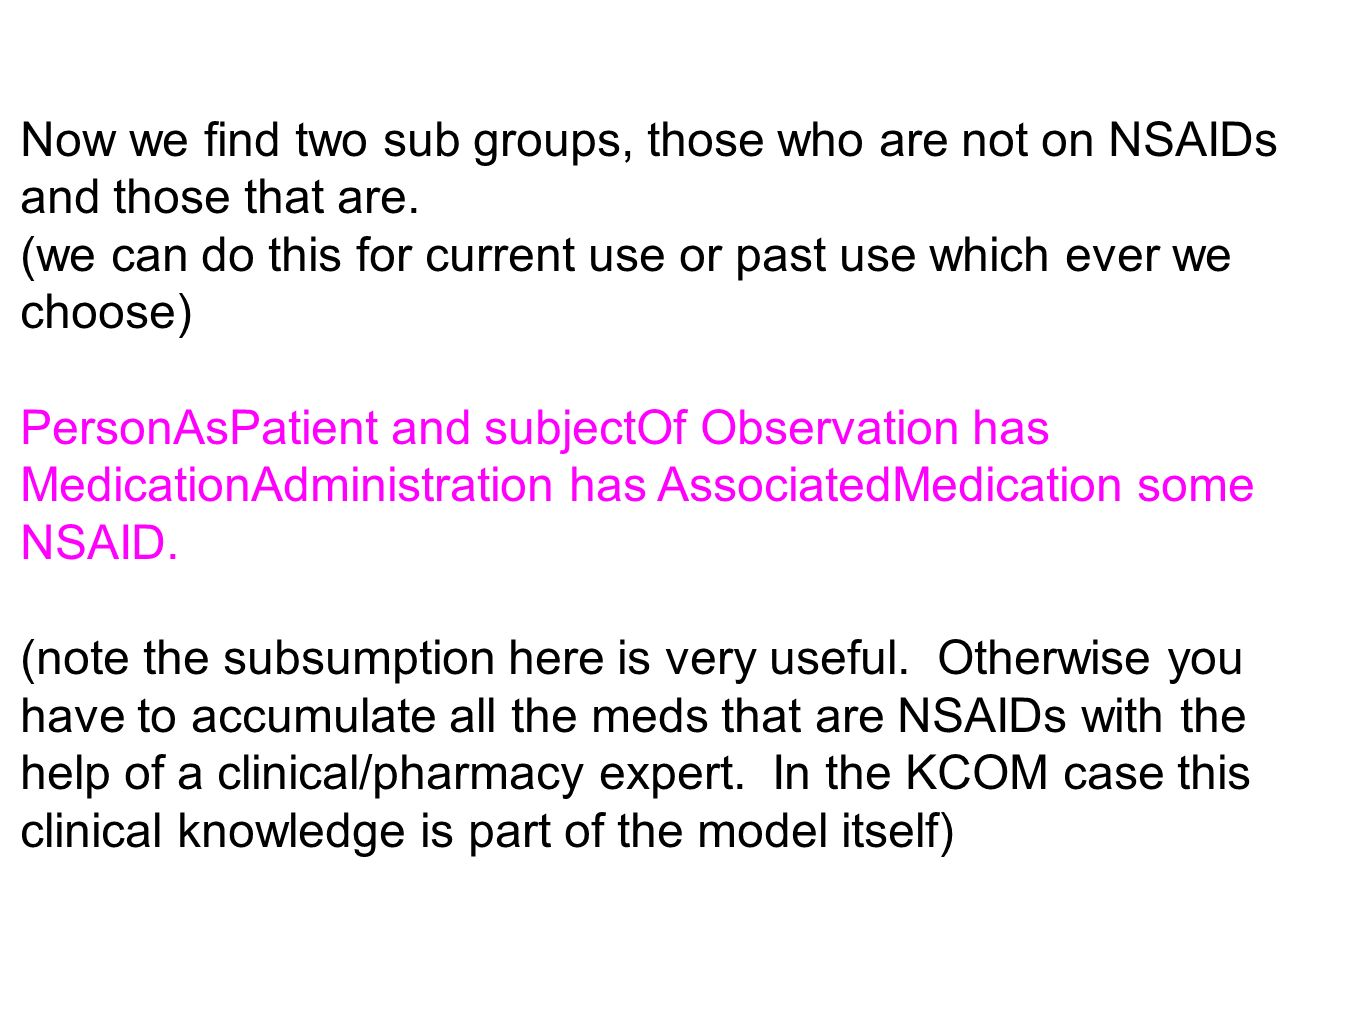 Now we find two sub groups, those who are not on NSAIDs and those that are. (we can do this for current use or past use which ever we choose) PersonAs